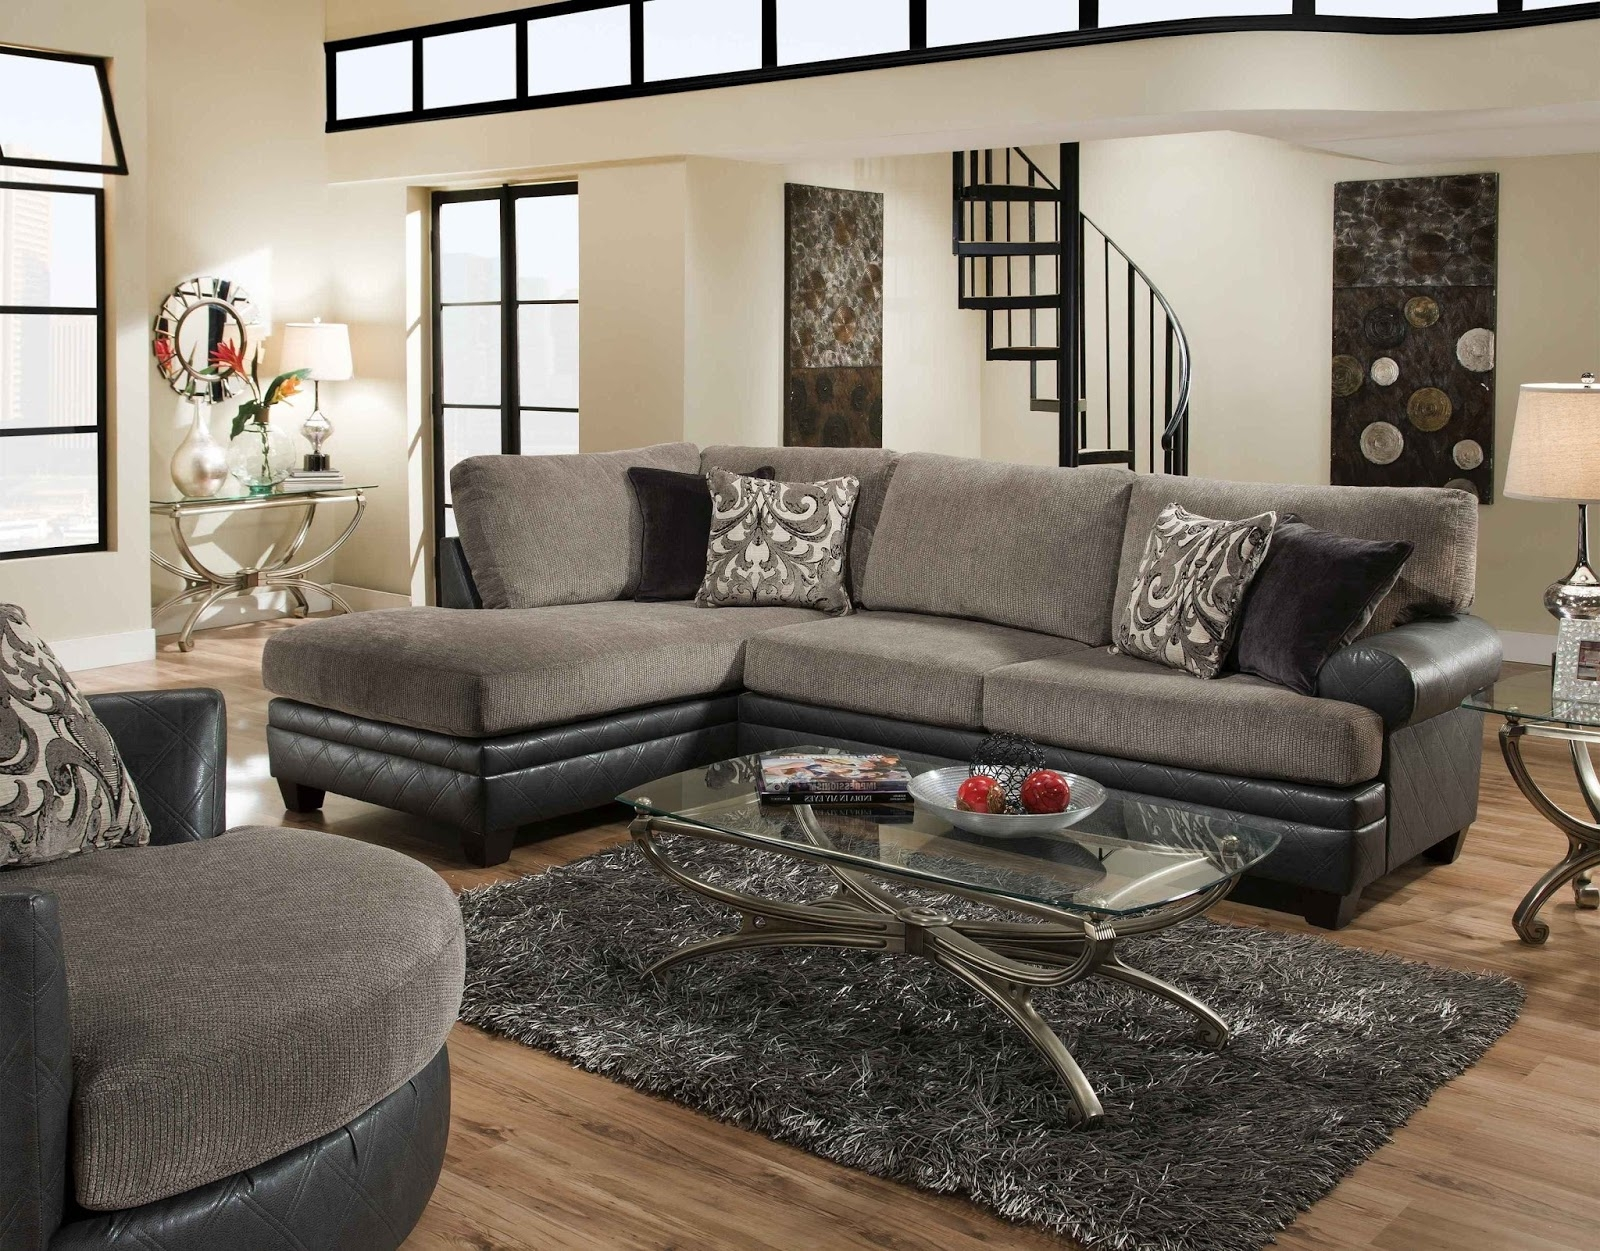 albany industries leather sofa teal velvet ebay sectional | ideas